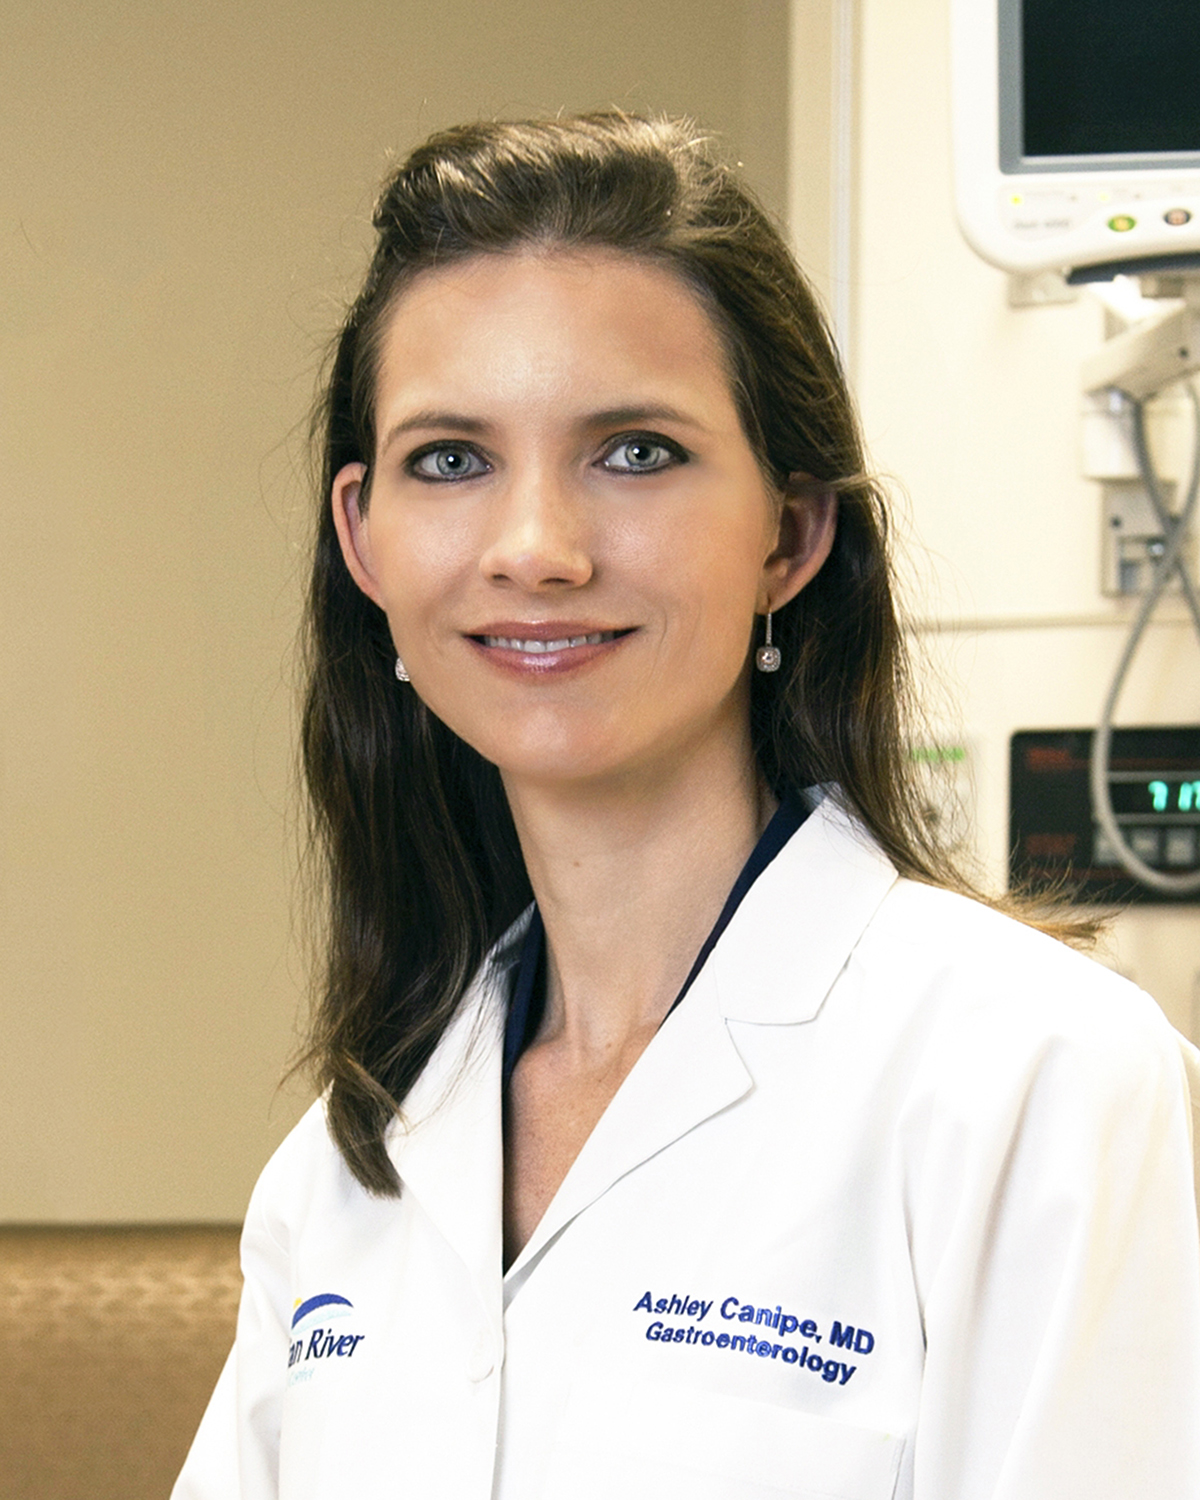 Ashley Canipe, M.D.